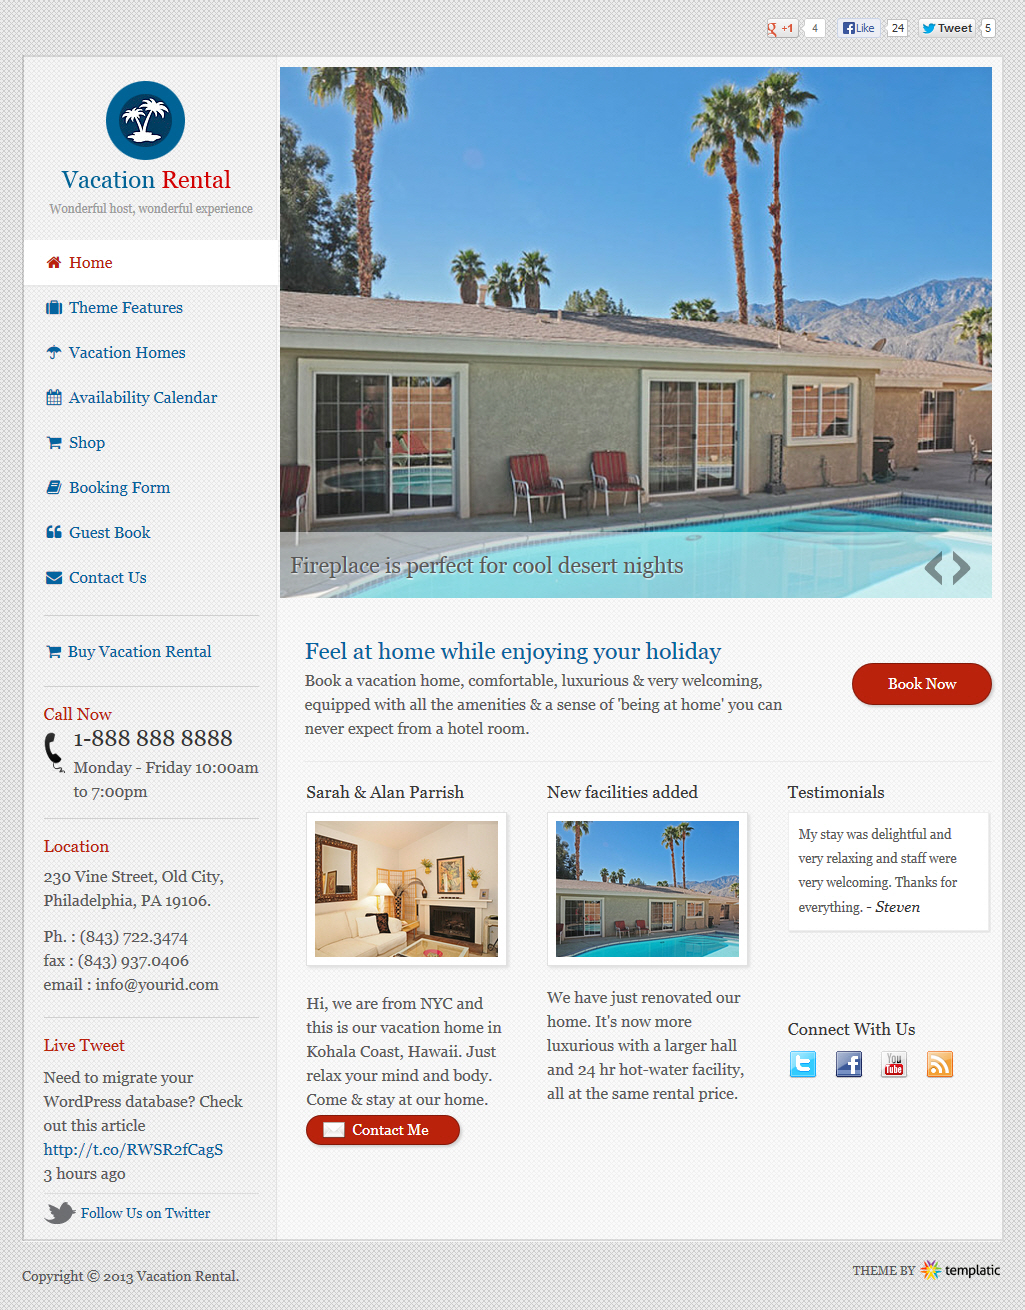 Vacation Rental Theme